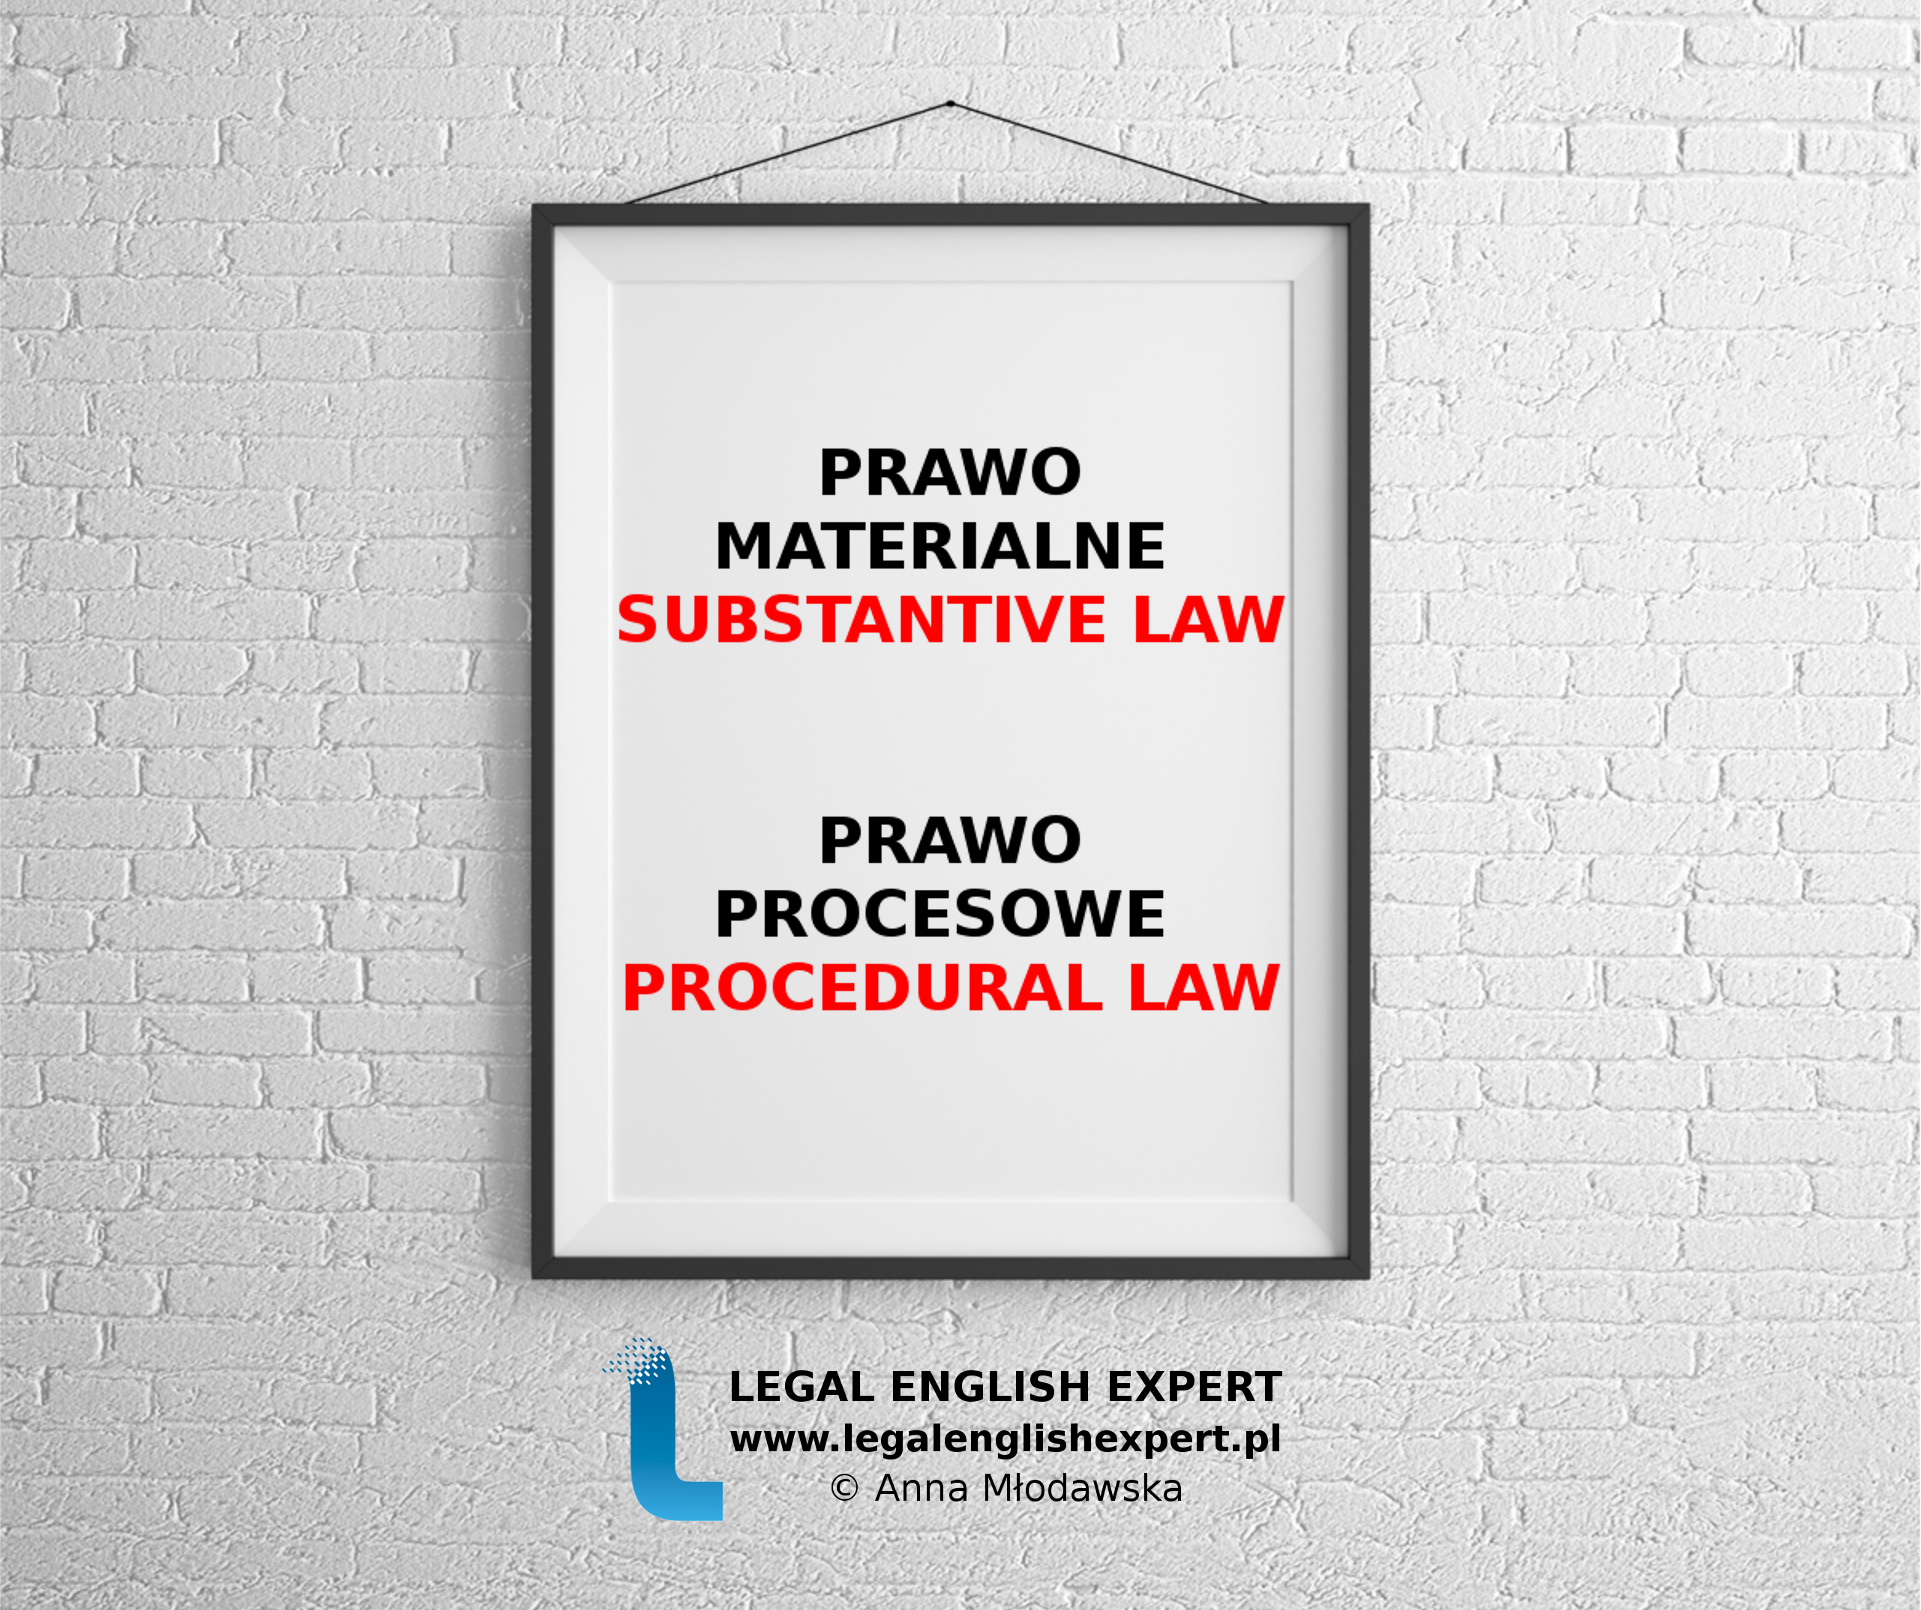 LEGAL ENGLISH EXPERT - infografika_33 - prawo materialne i procesowe